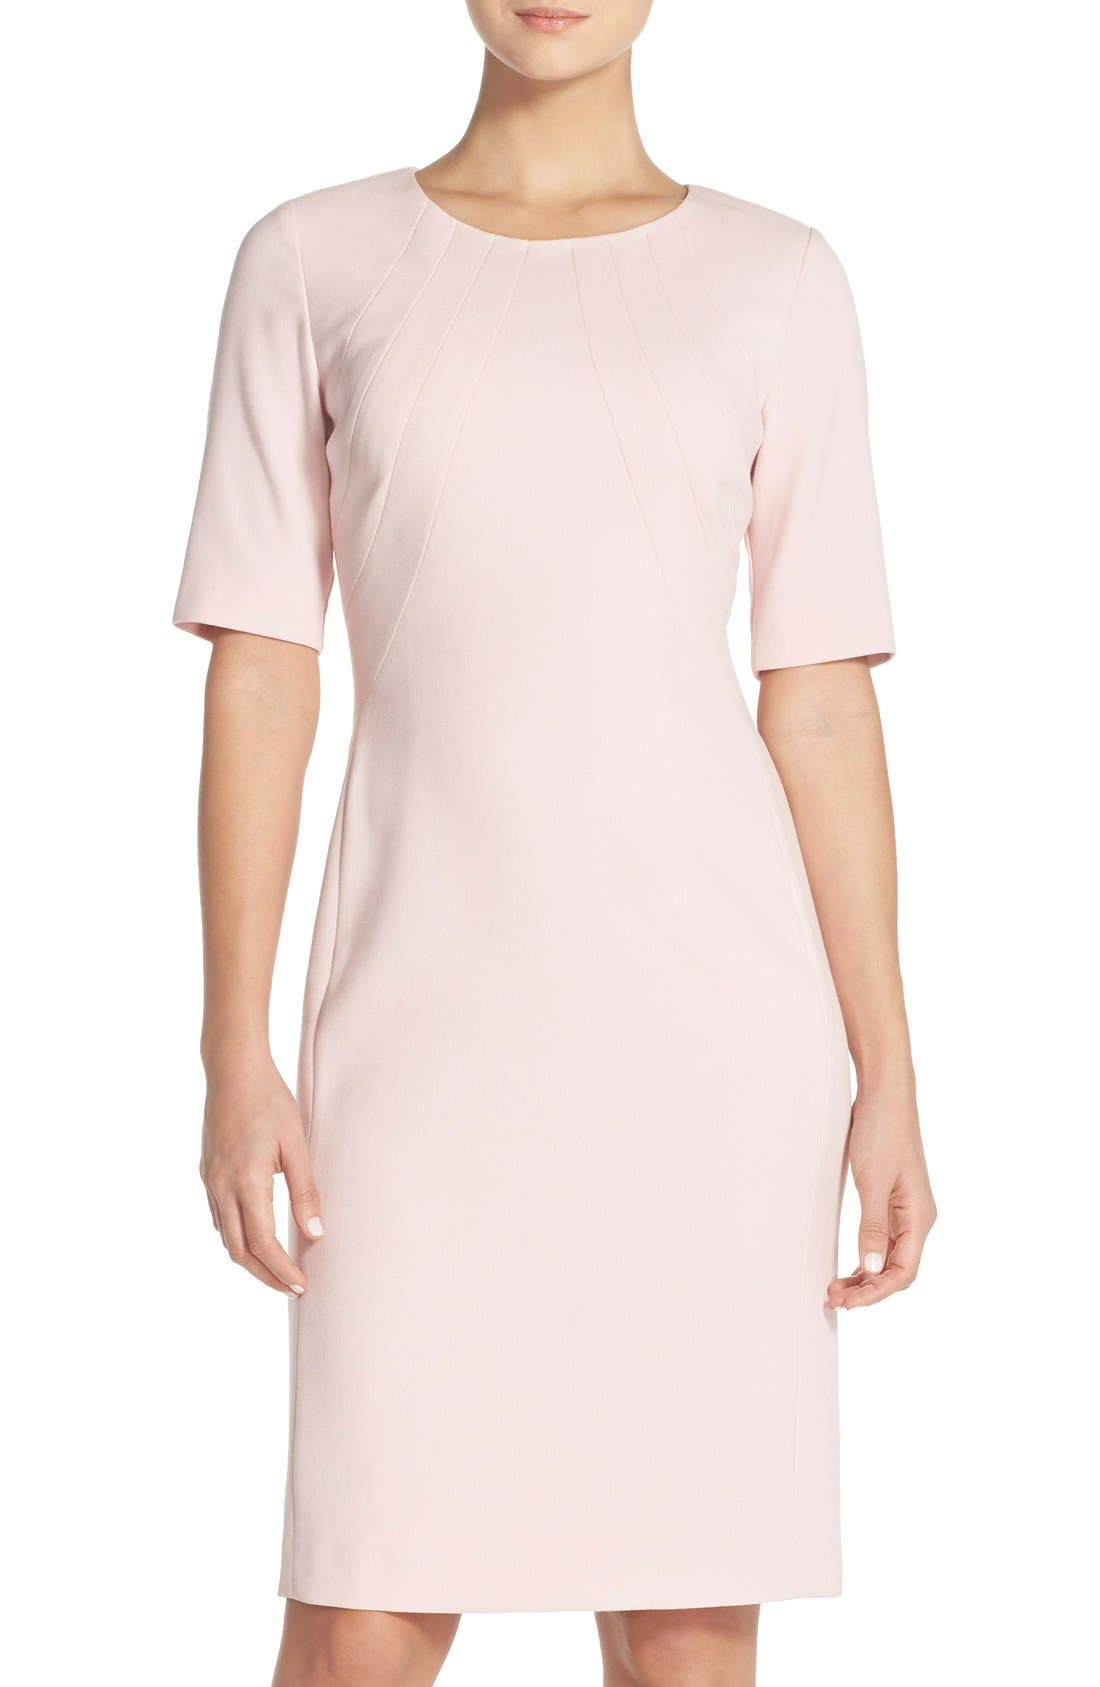 Eliza J Crepe Sheath Dress (Regular & Petite)